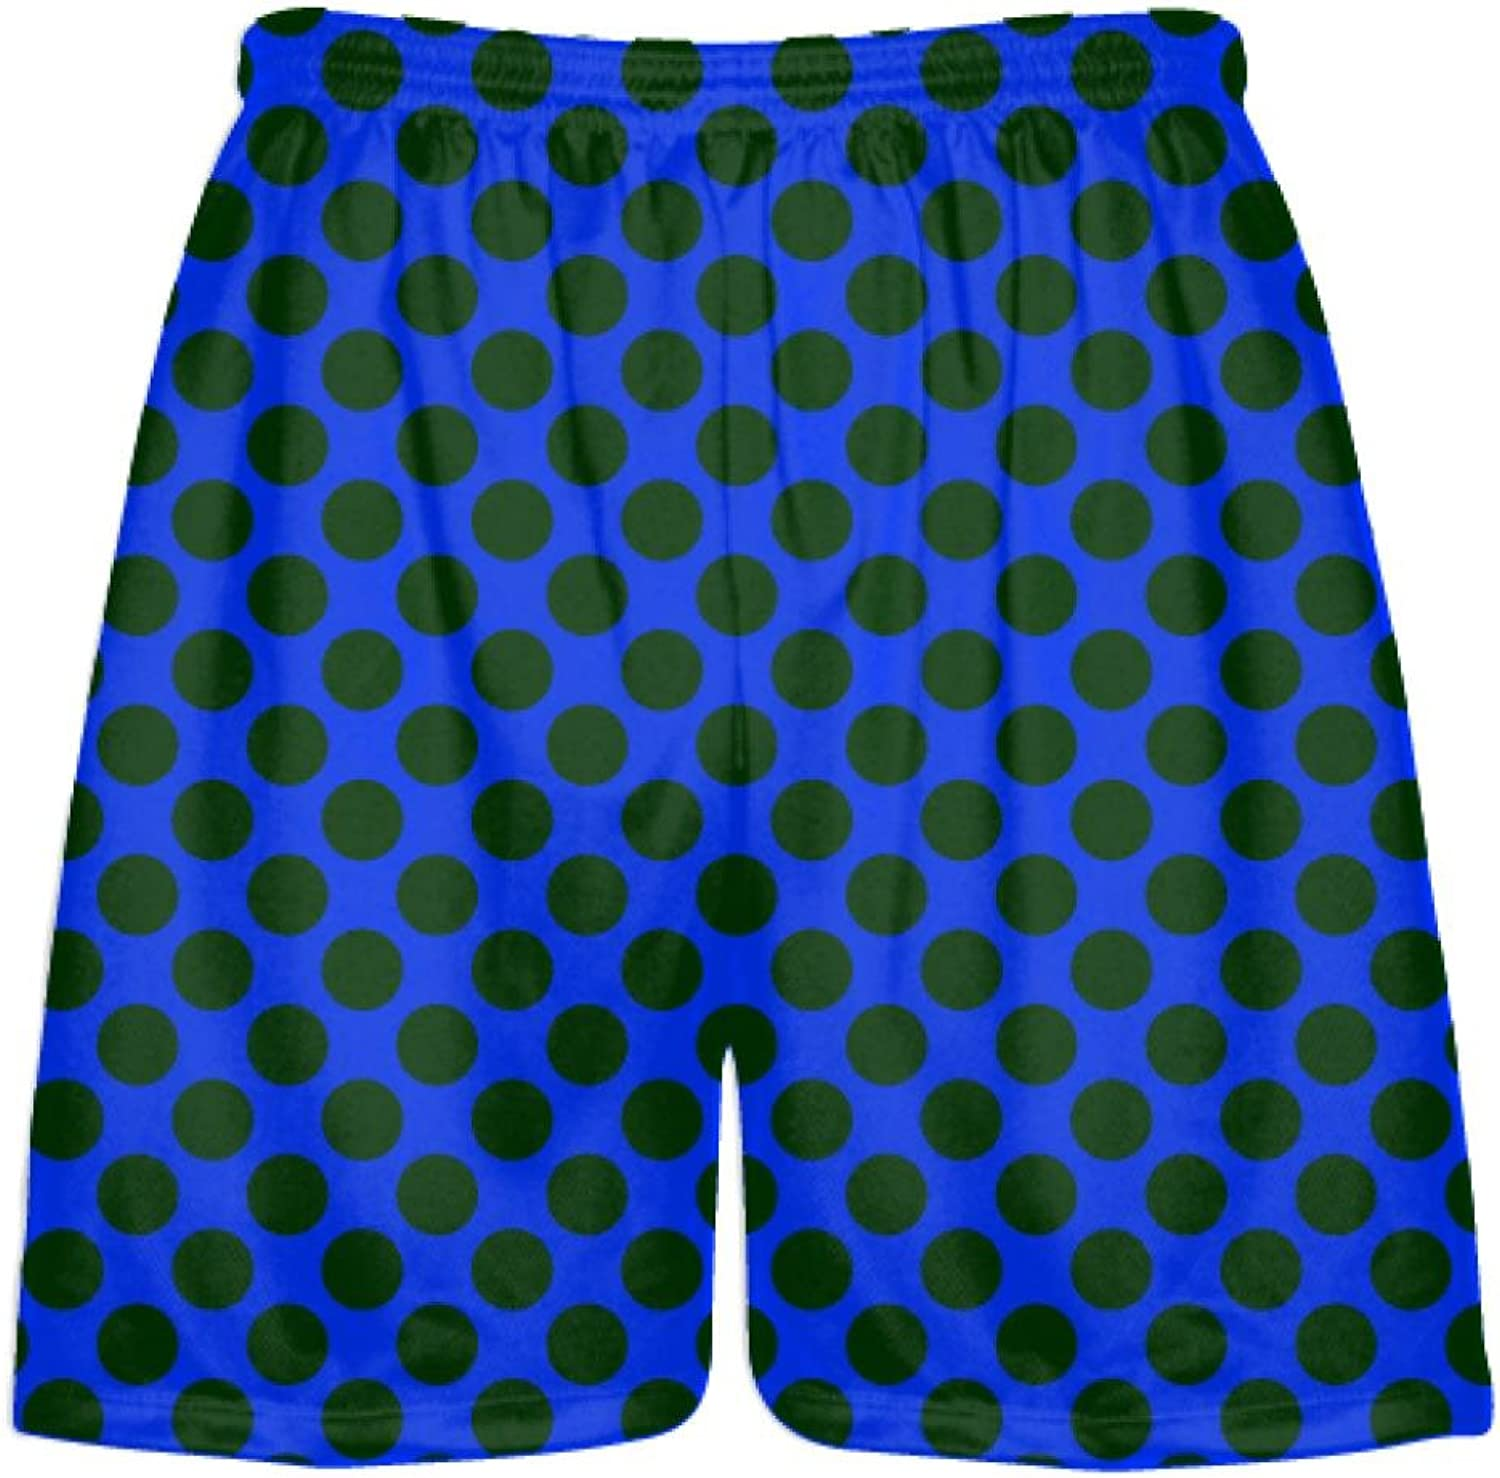 LightningWear Youth Royal bluee Dark Green Polka Dot ShortsAthletic Shorts PocketsYouth Adult Shorts Youth, Royal bluee